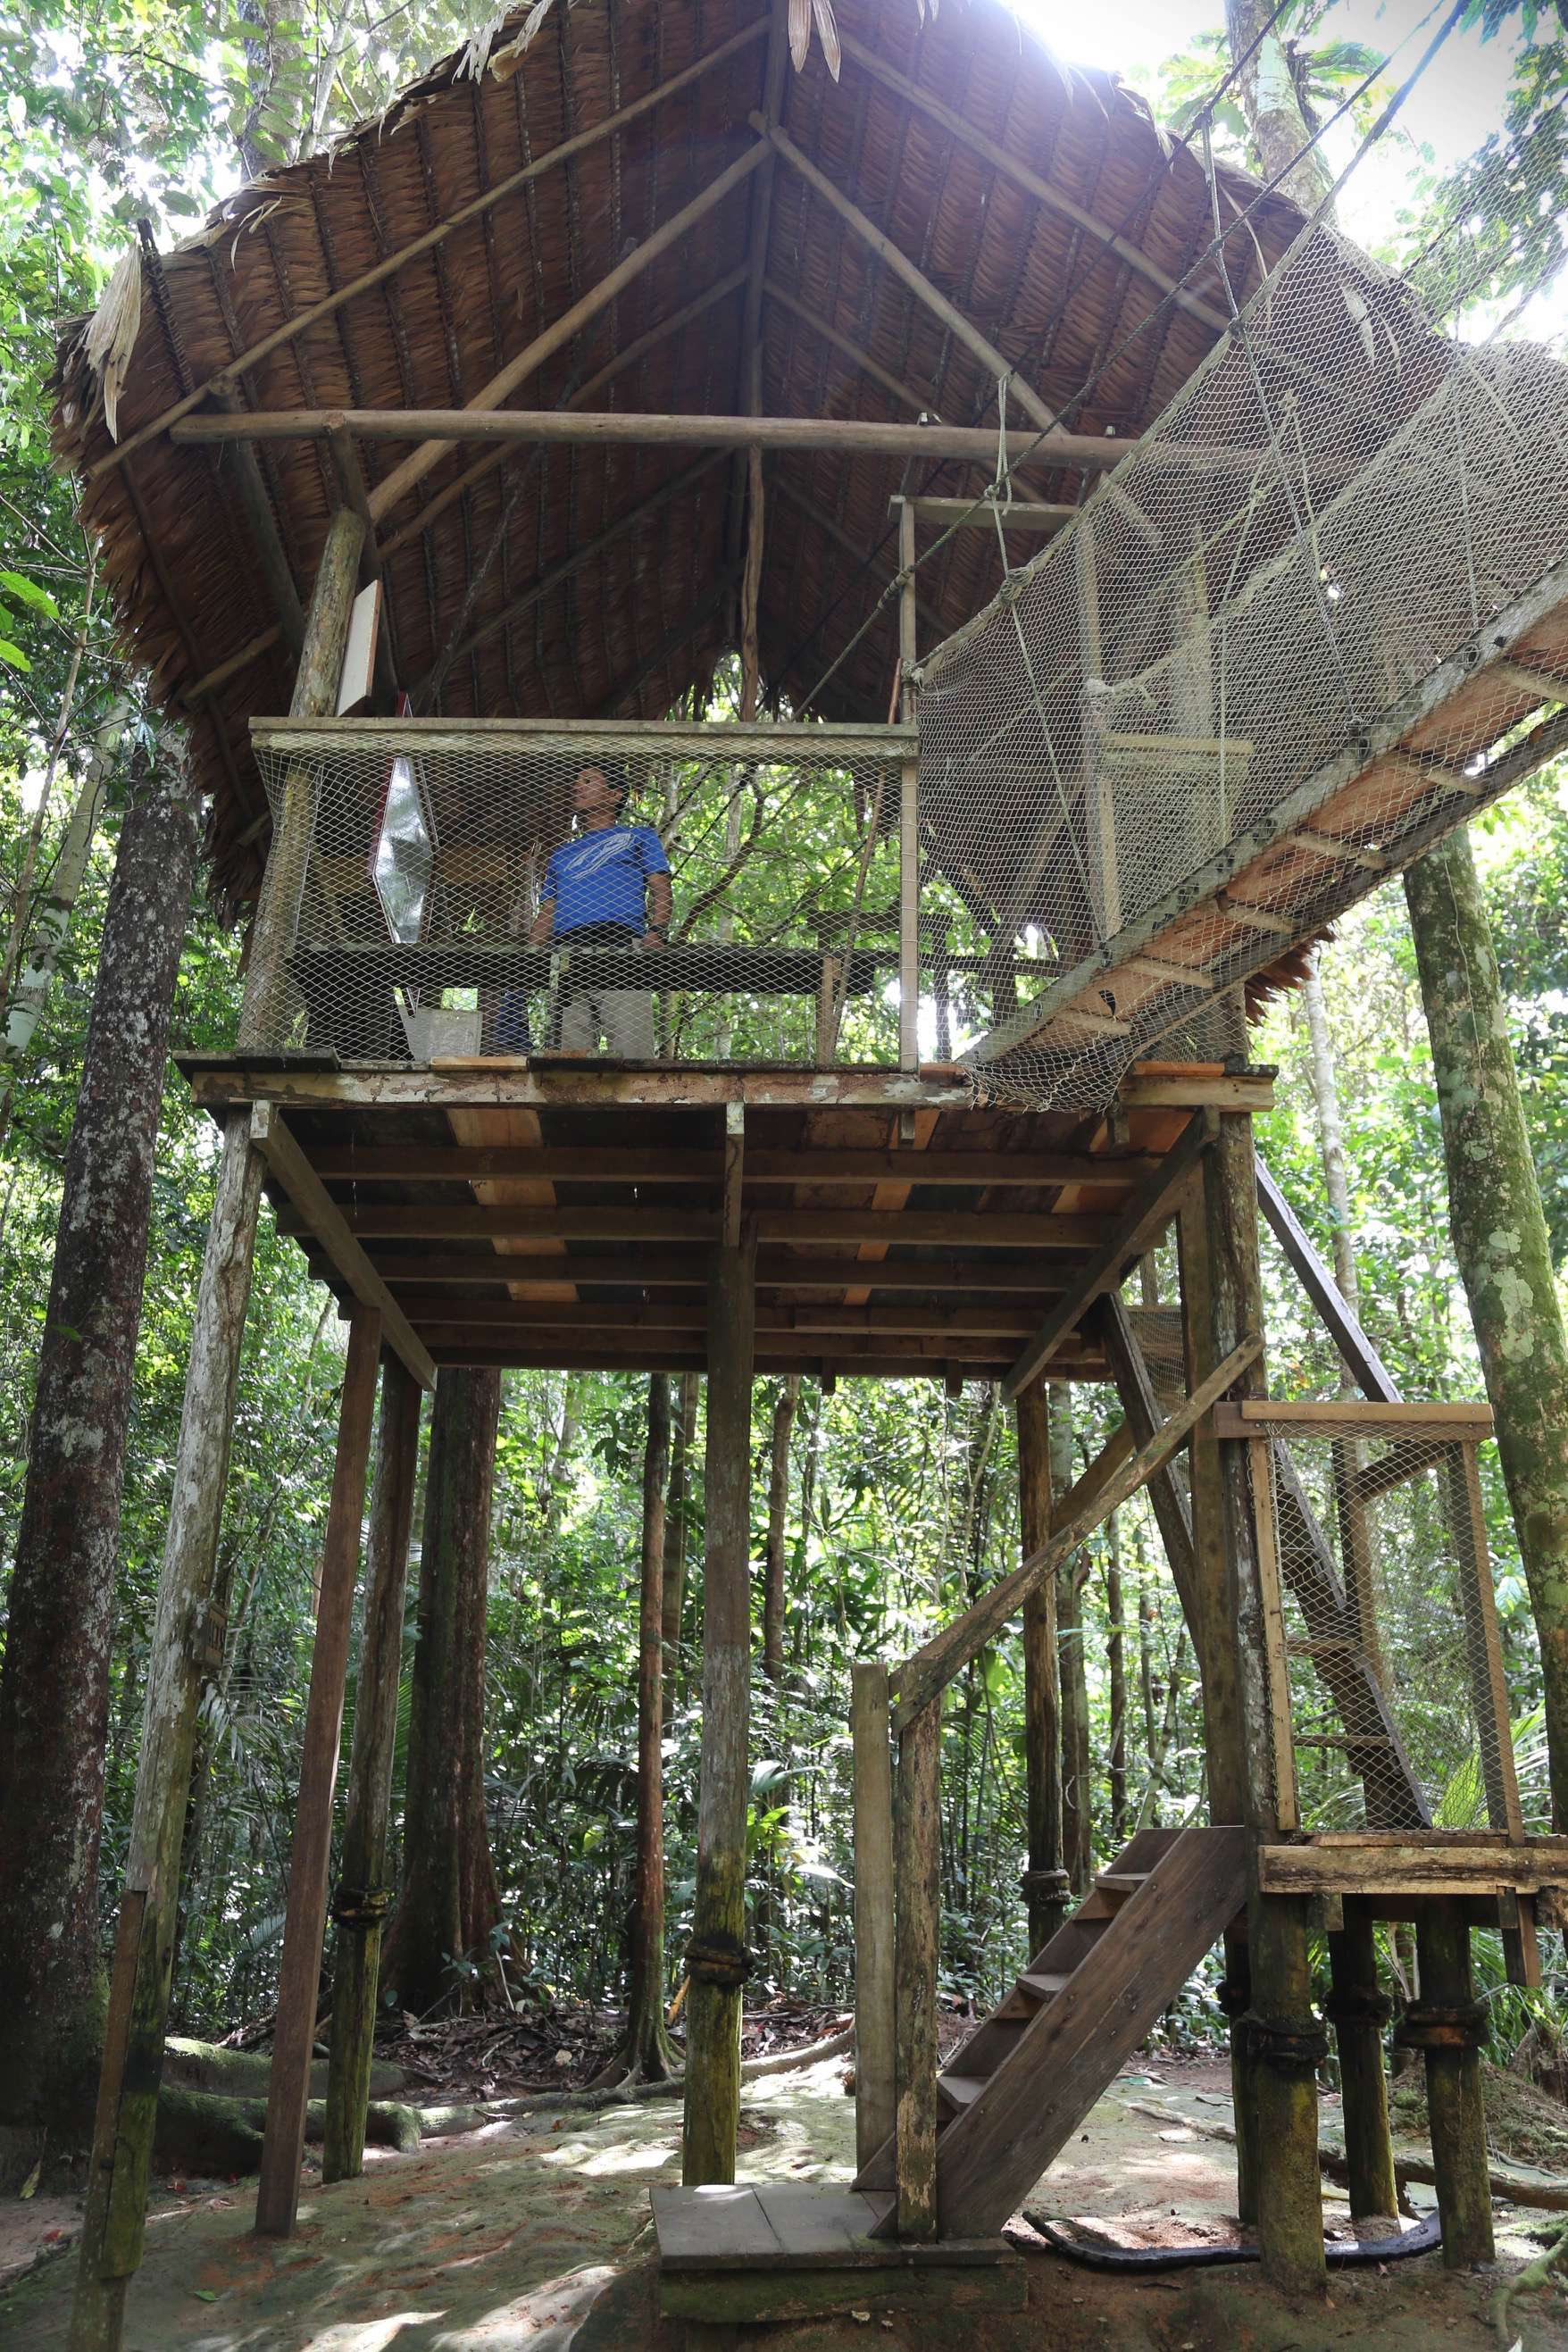 To get to the canopy walkway, you go up these steps. And expert guide waits for a visitor to arrive.